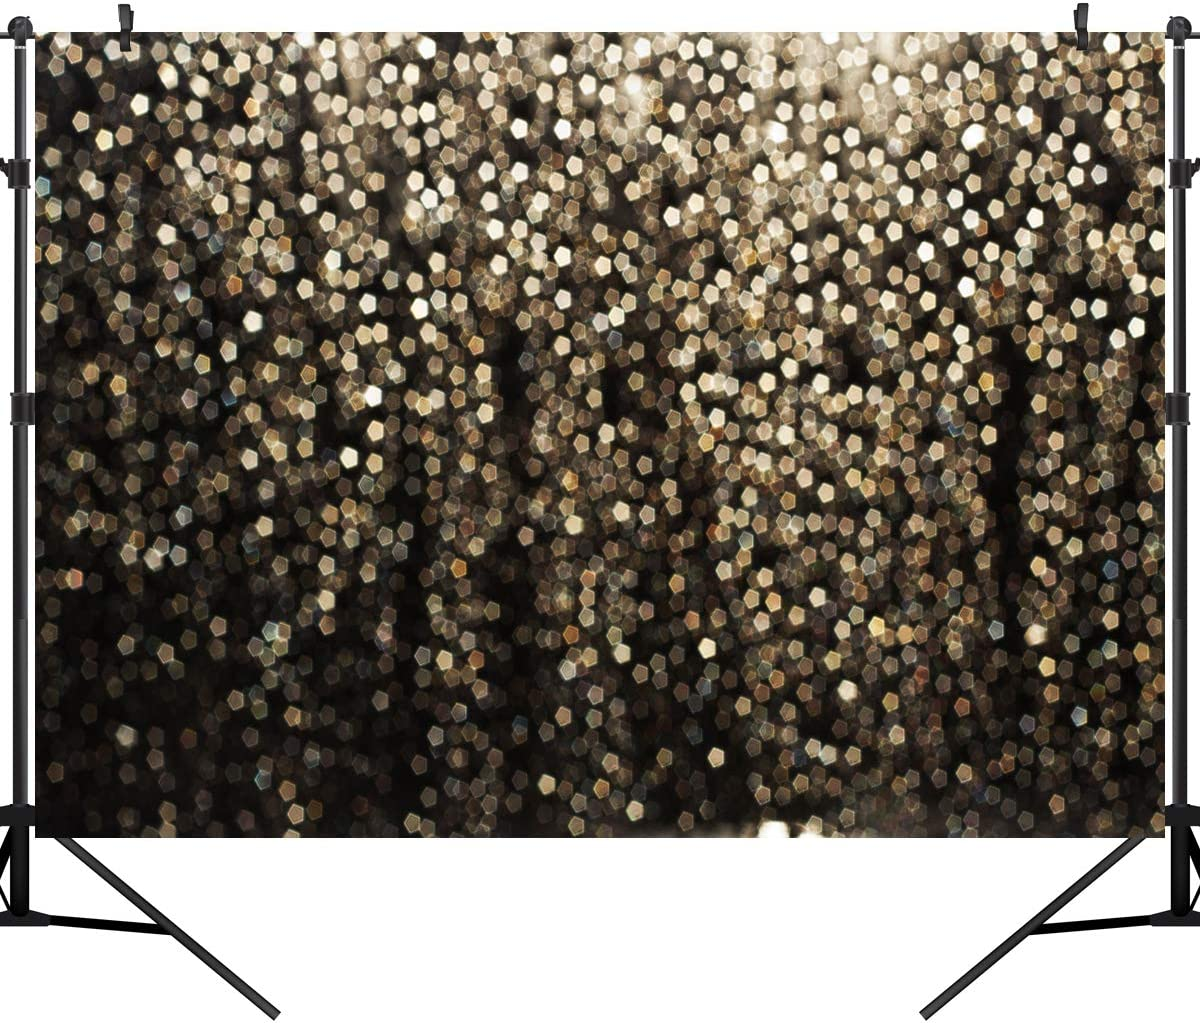 OUYIDA 7X5FT Gold Glitter Backdrop Happy New Year 2021 Gold Bokeh Spots Vinyl Backdrop for Birthday Party Pictures Photo Booth Shoot Festival Prom Dance Decor Wedding PCK45A